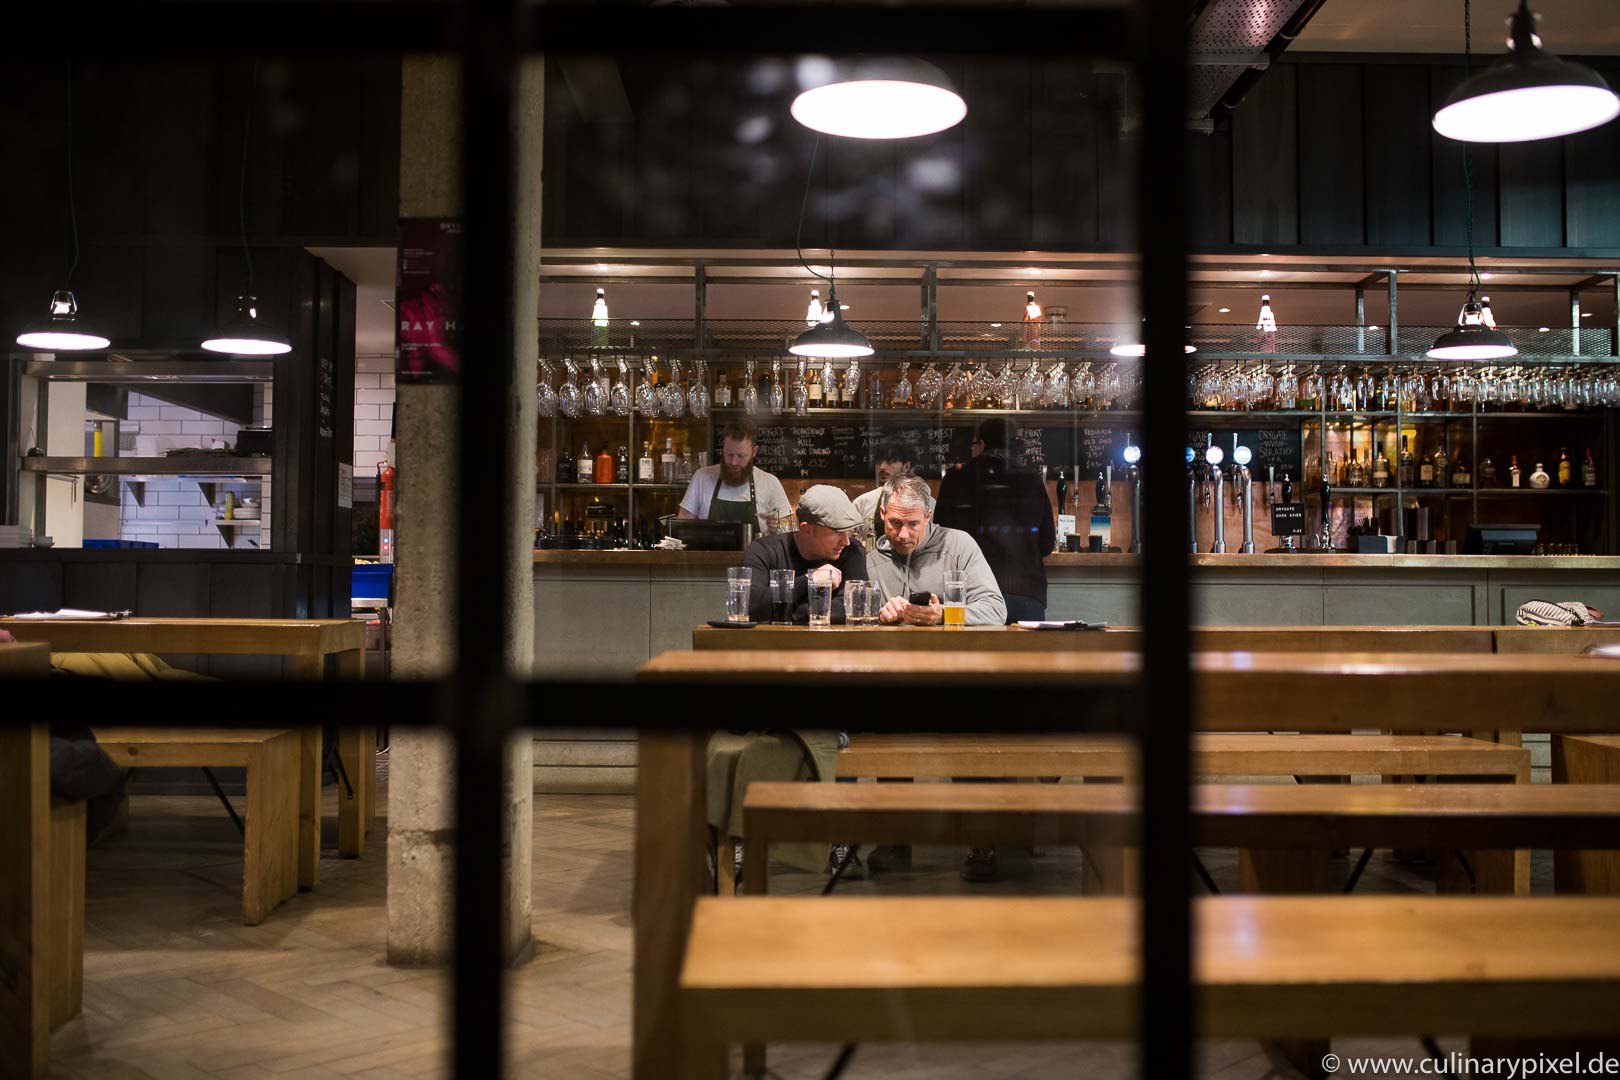 Glasgow City Guide: 4 Tage in Glasgow: Restaurants, Bars, Hotels, Shops